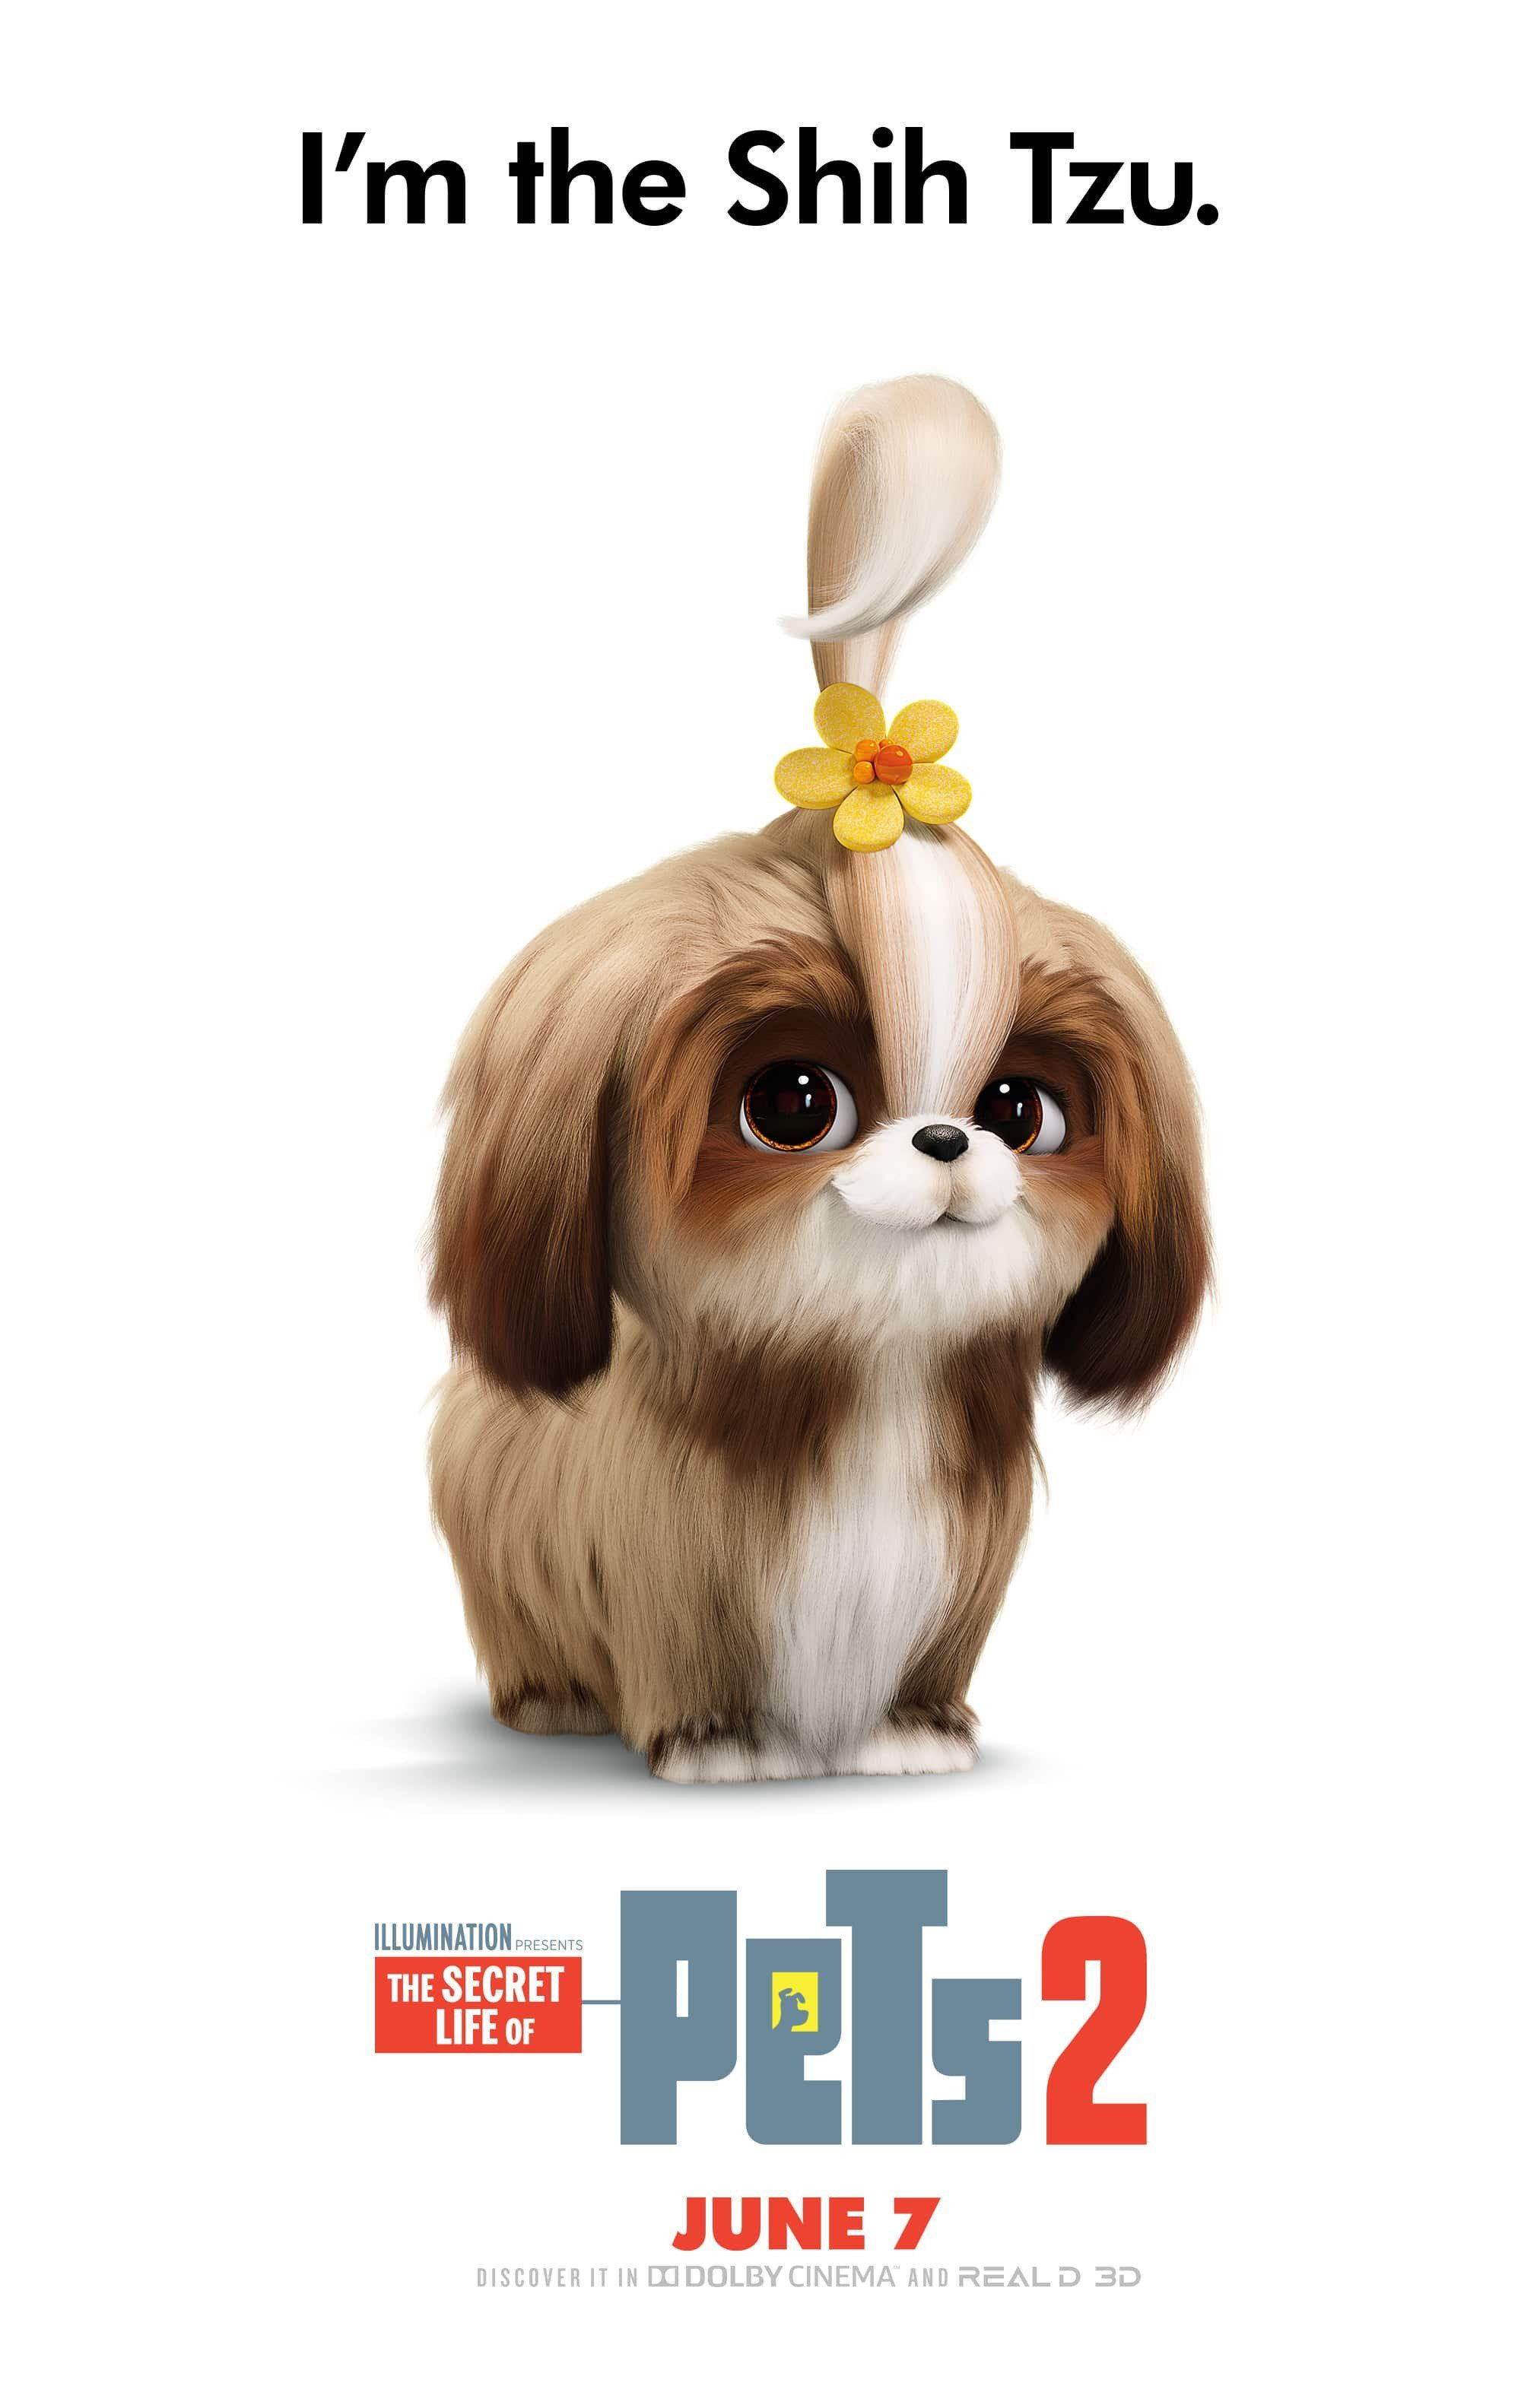 Secret Life Of Pets Coloring Pages Lovely The Secret Life Of Pets 2 Own It Digital Now Secret Life Of Pets Secret Life The Secret